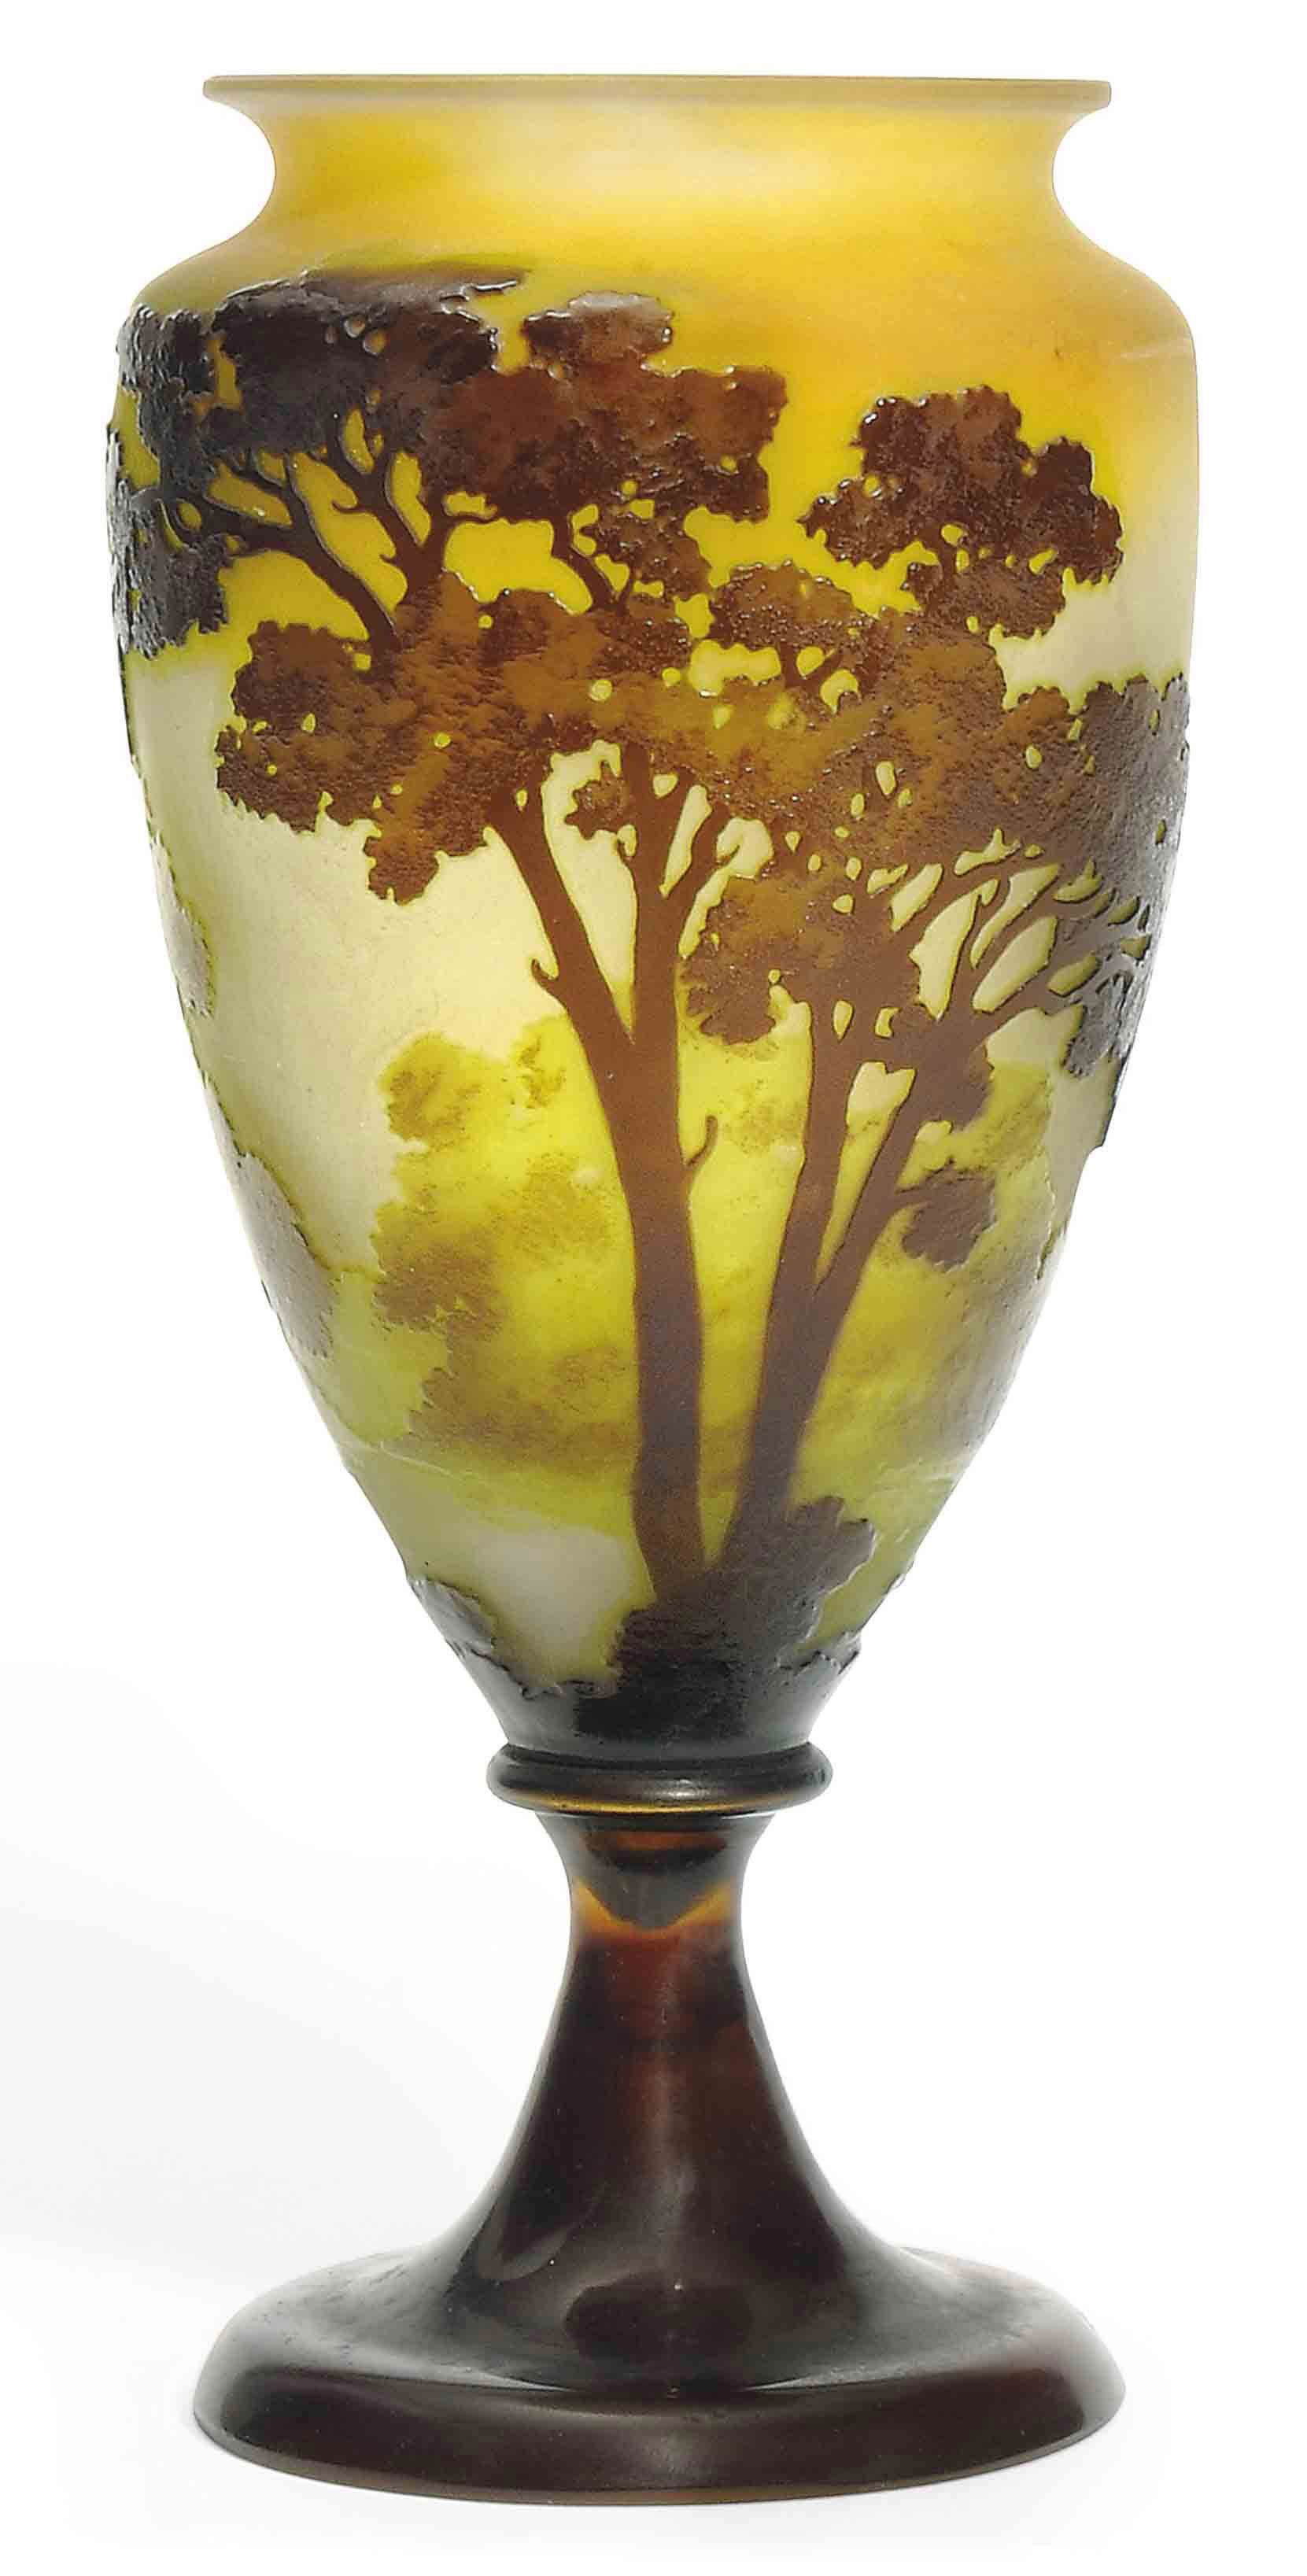 AN EMILE GALLÉ CAMEO GLASS 'LA